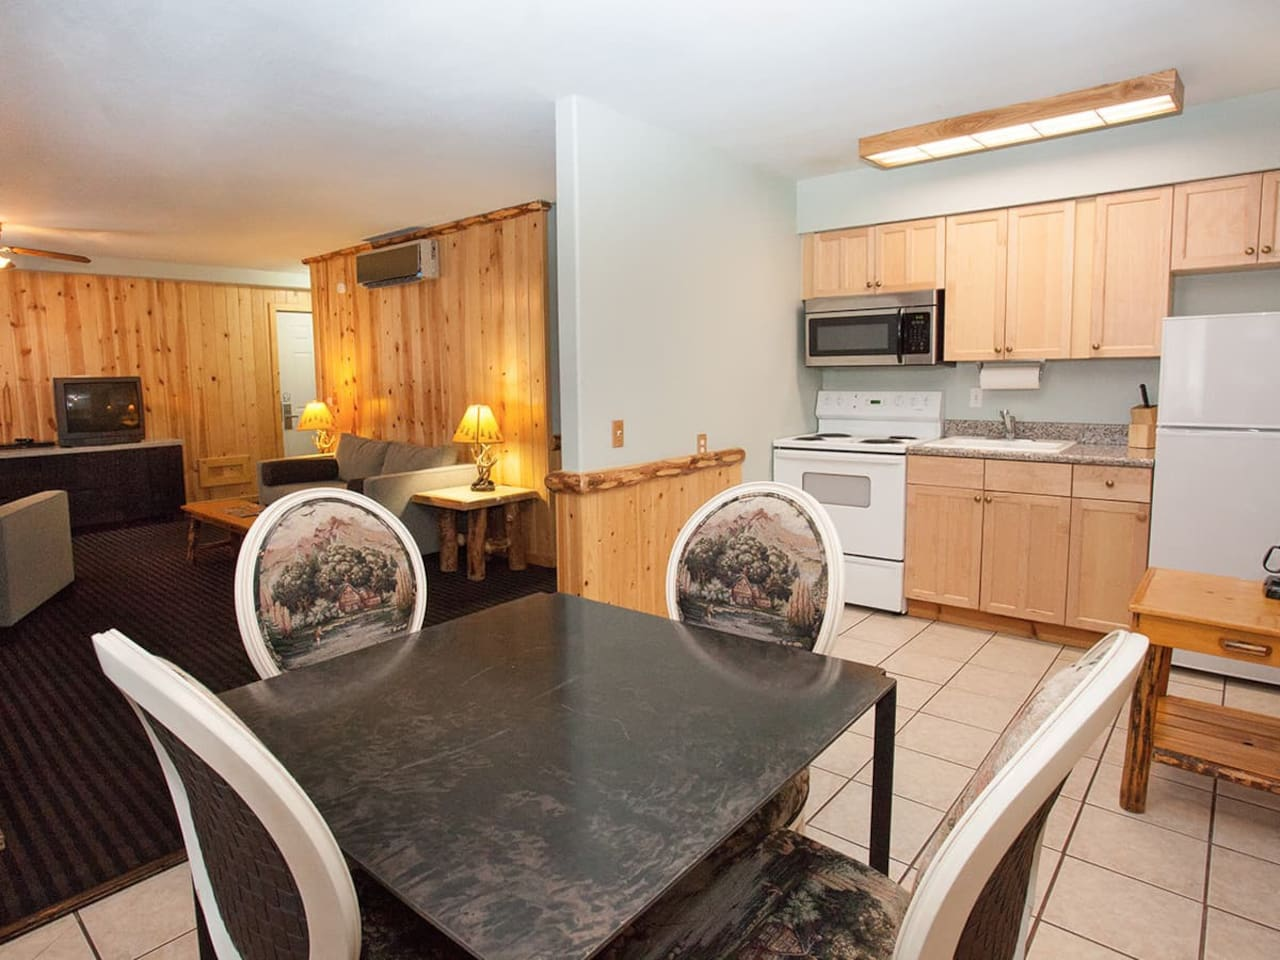 This townhome features a full kitchen, dining area, and living room.